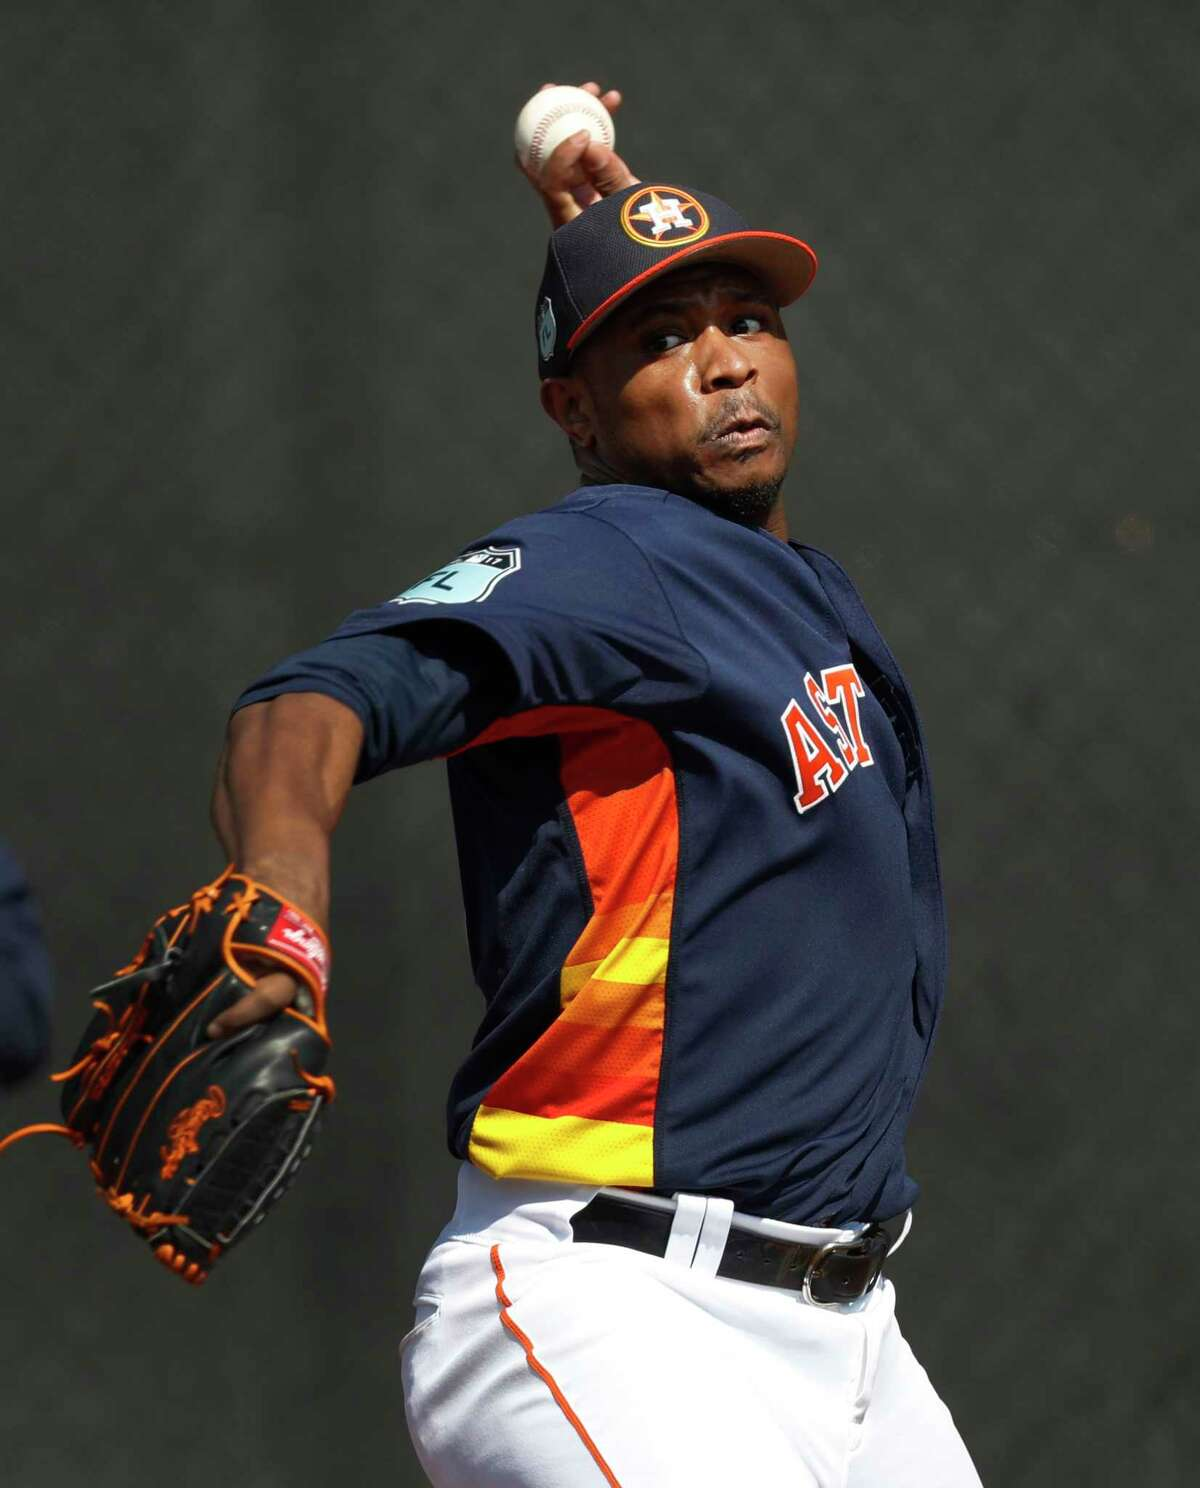 As the Astros' primary lefty reliever, Tony Sipp saw his ERA go from 1.99 in 2015 to 4.95 last year.